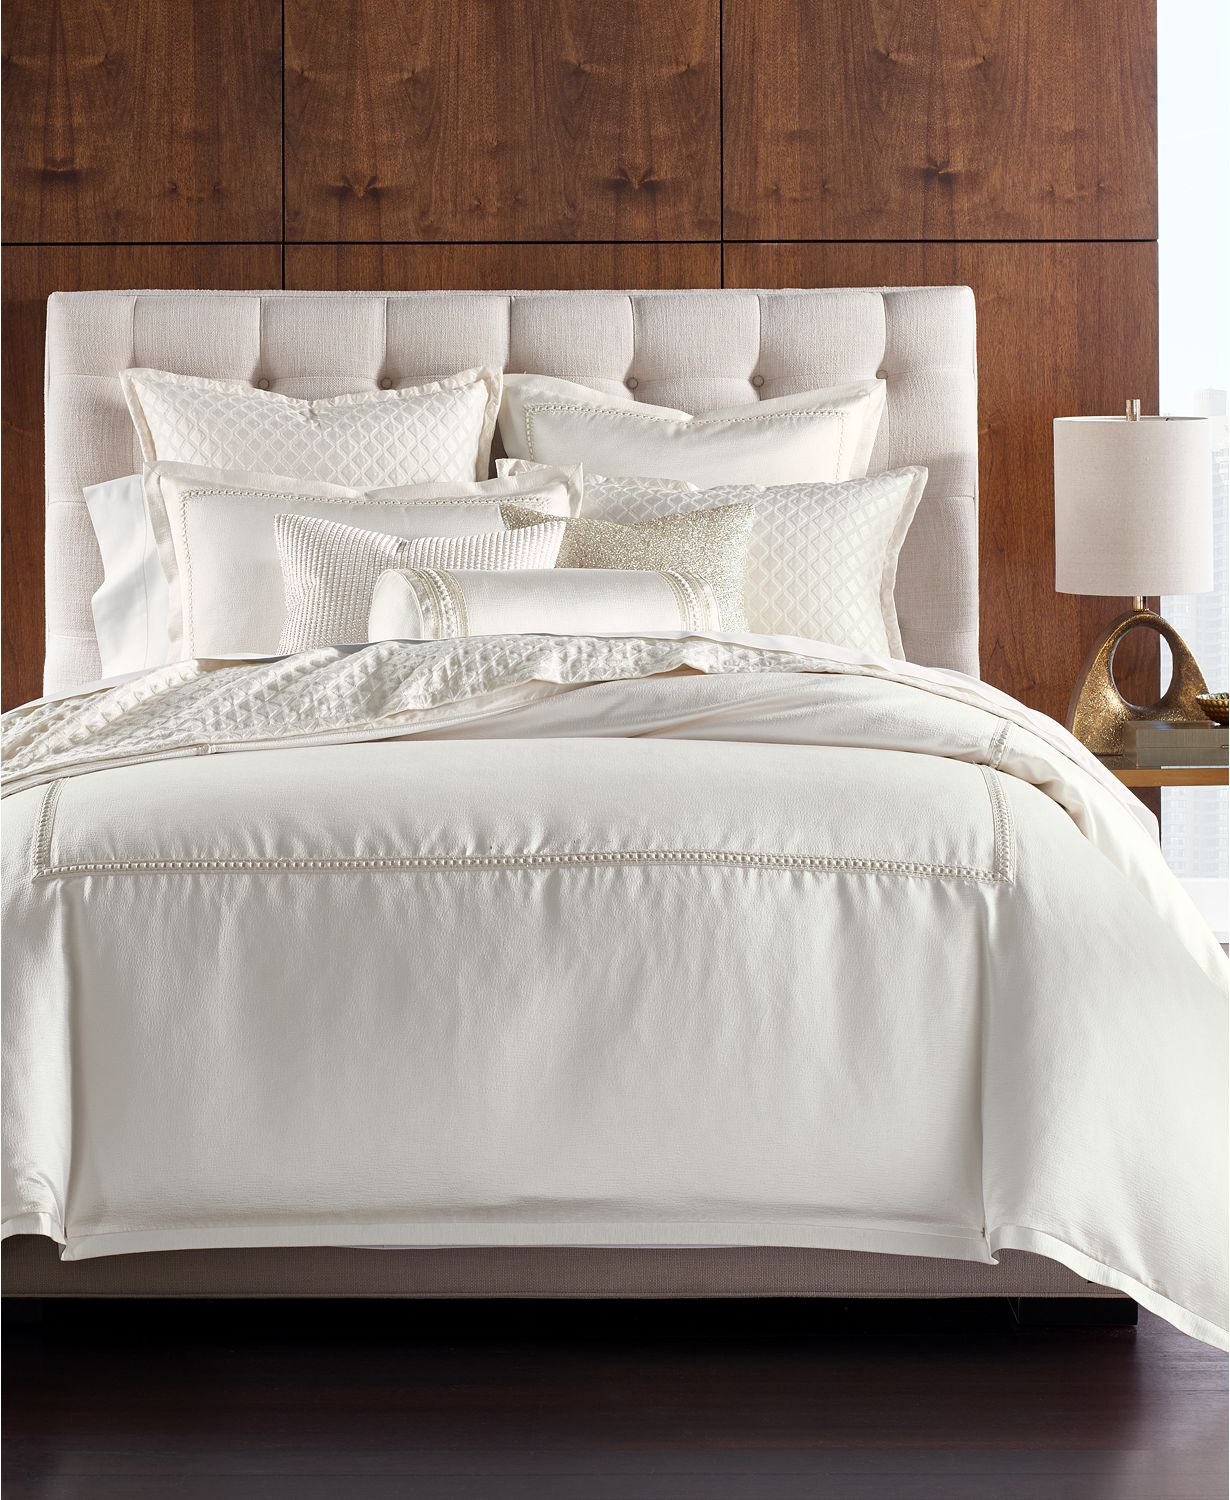 sale on bedding